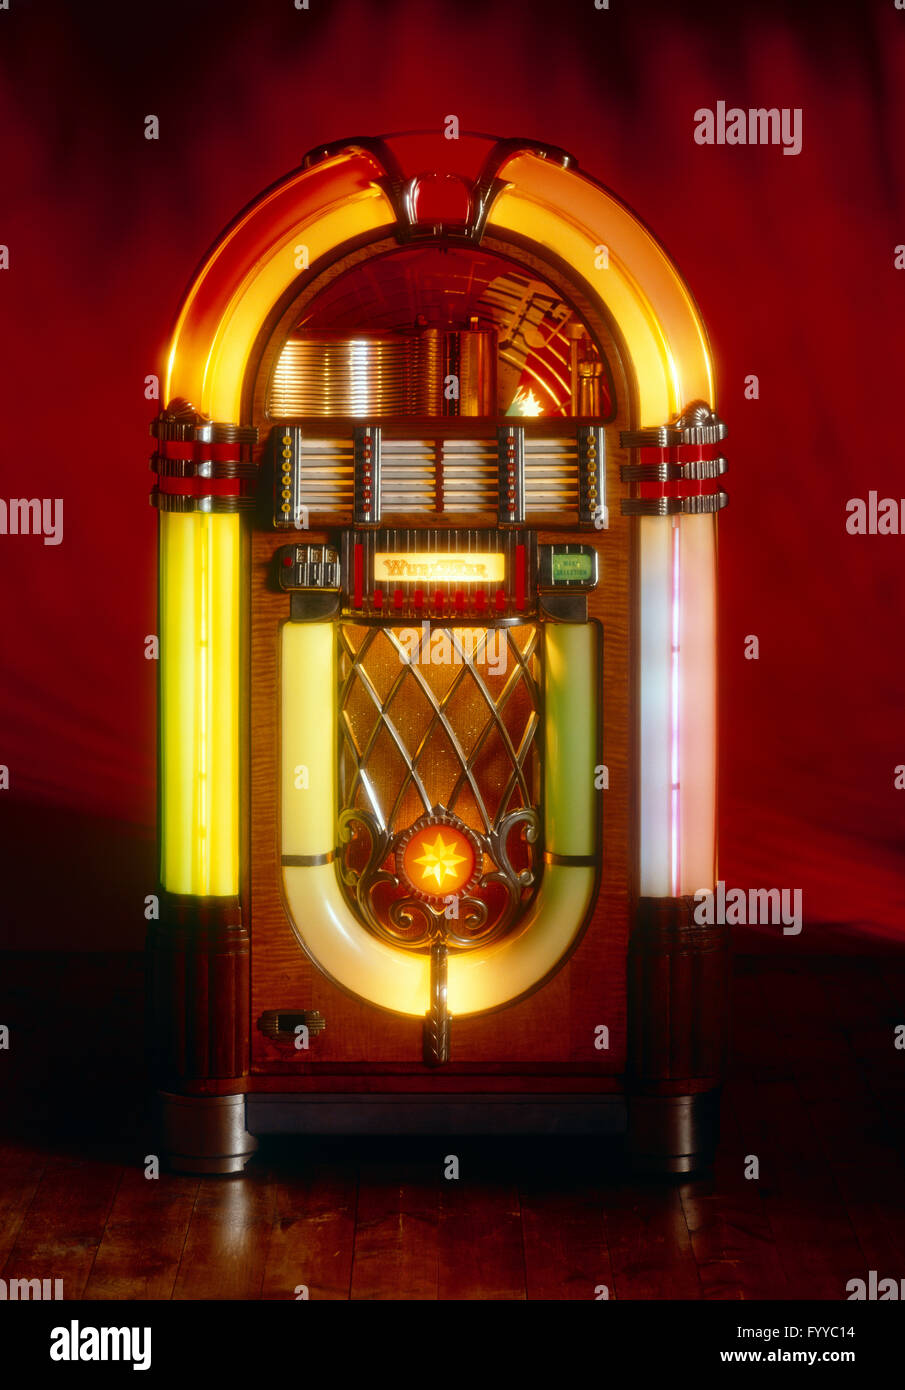 Wurlitzer Jukebox lit up, inside. - Stock Image